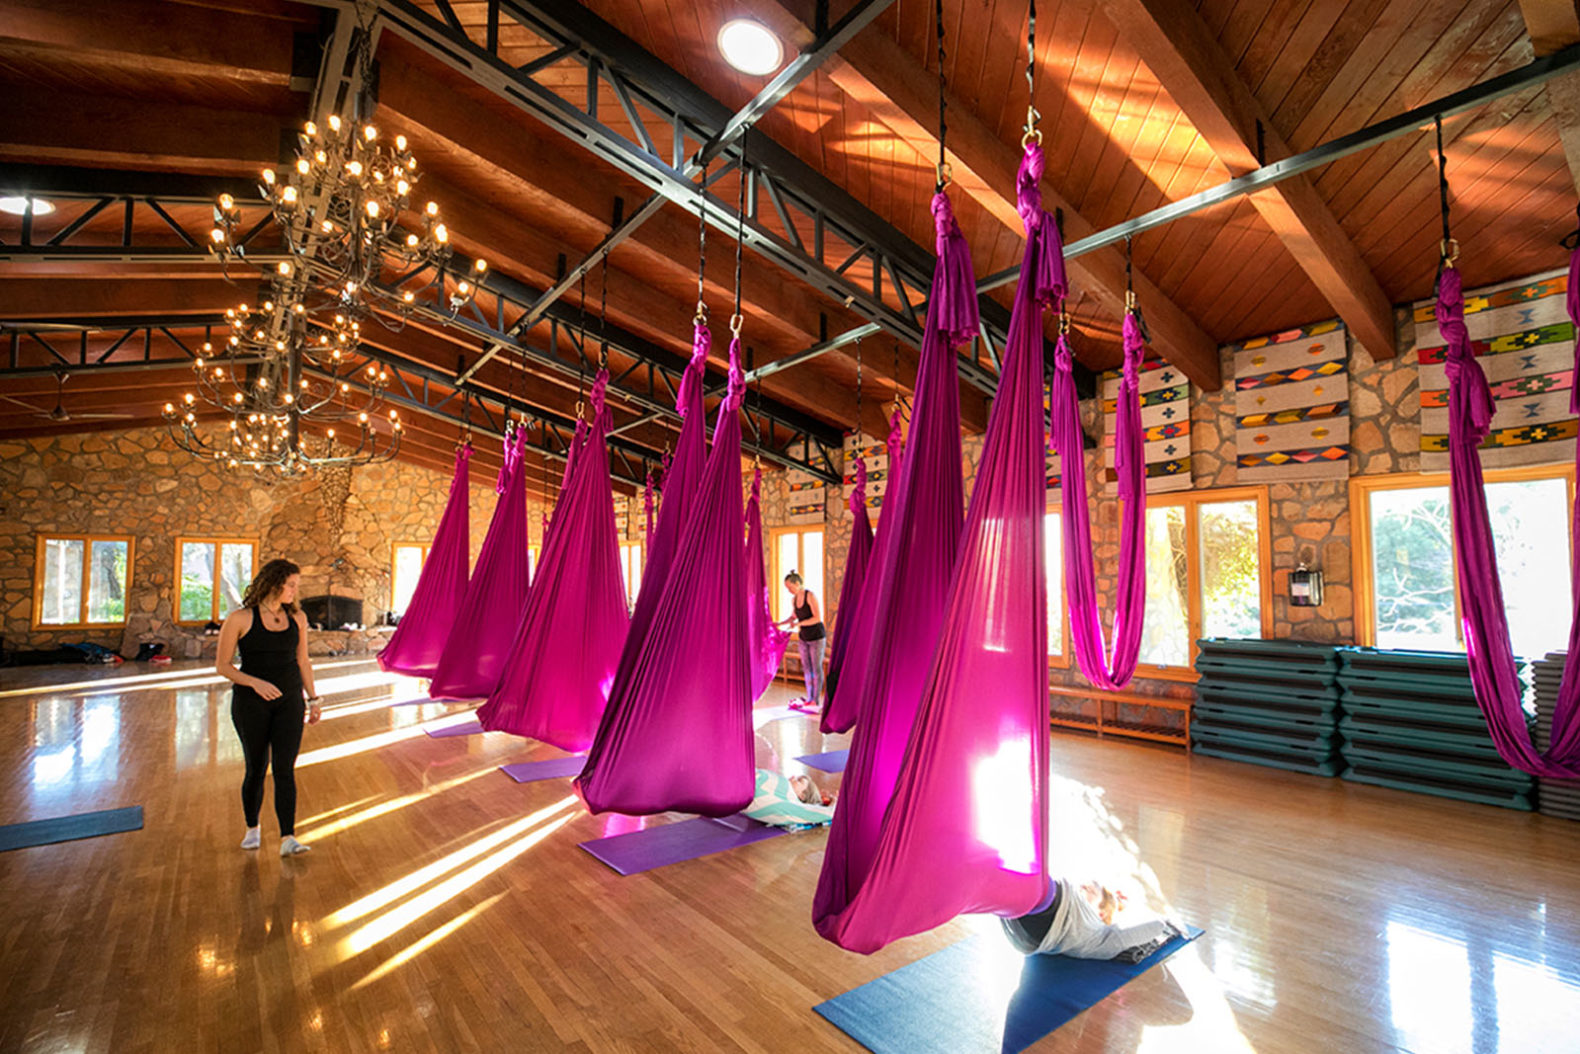 aeriel-yoga-flying-yoga-group-session-experience-sports-rancho-la-puerta-mexico-fitness-resort-spa-hotel